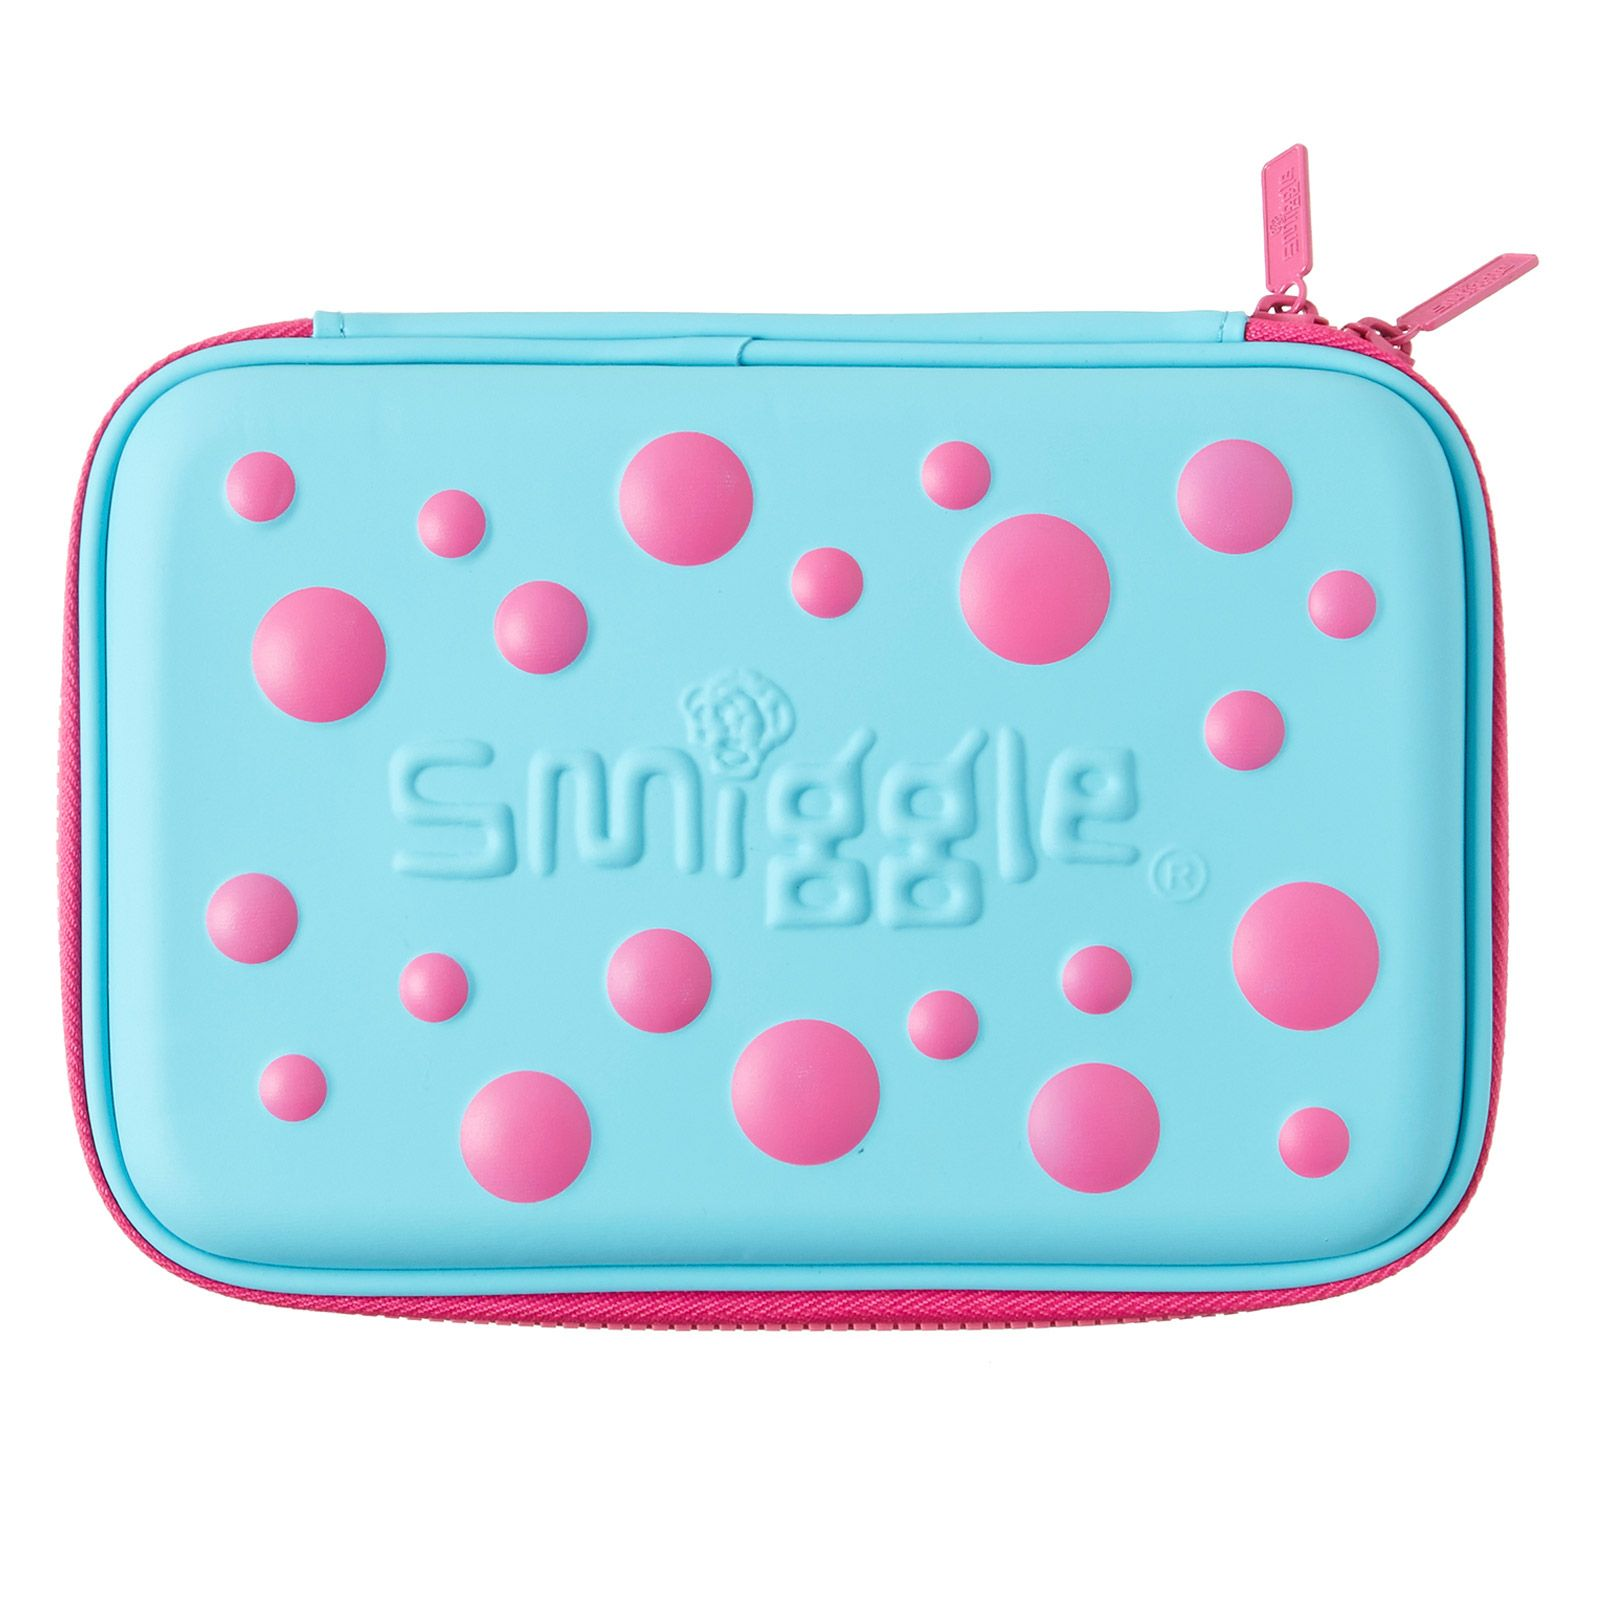 This is a Smiggle case that has Pink & Light Blue Pencil